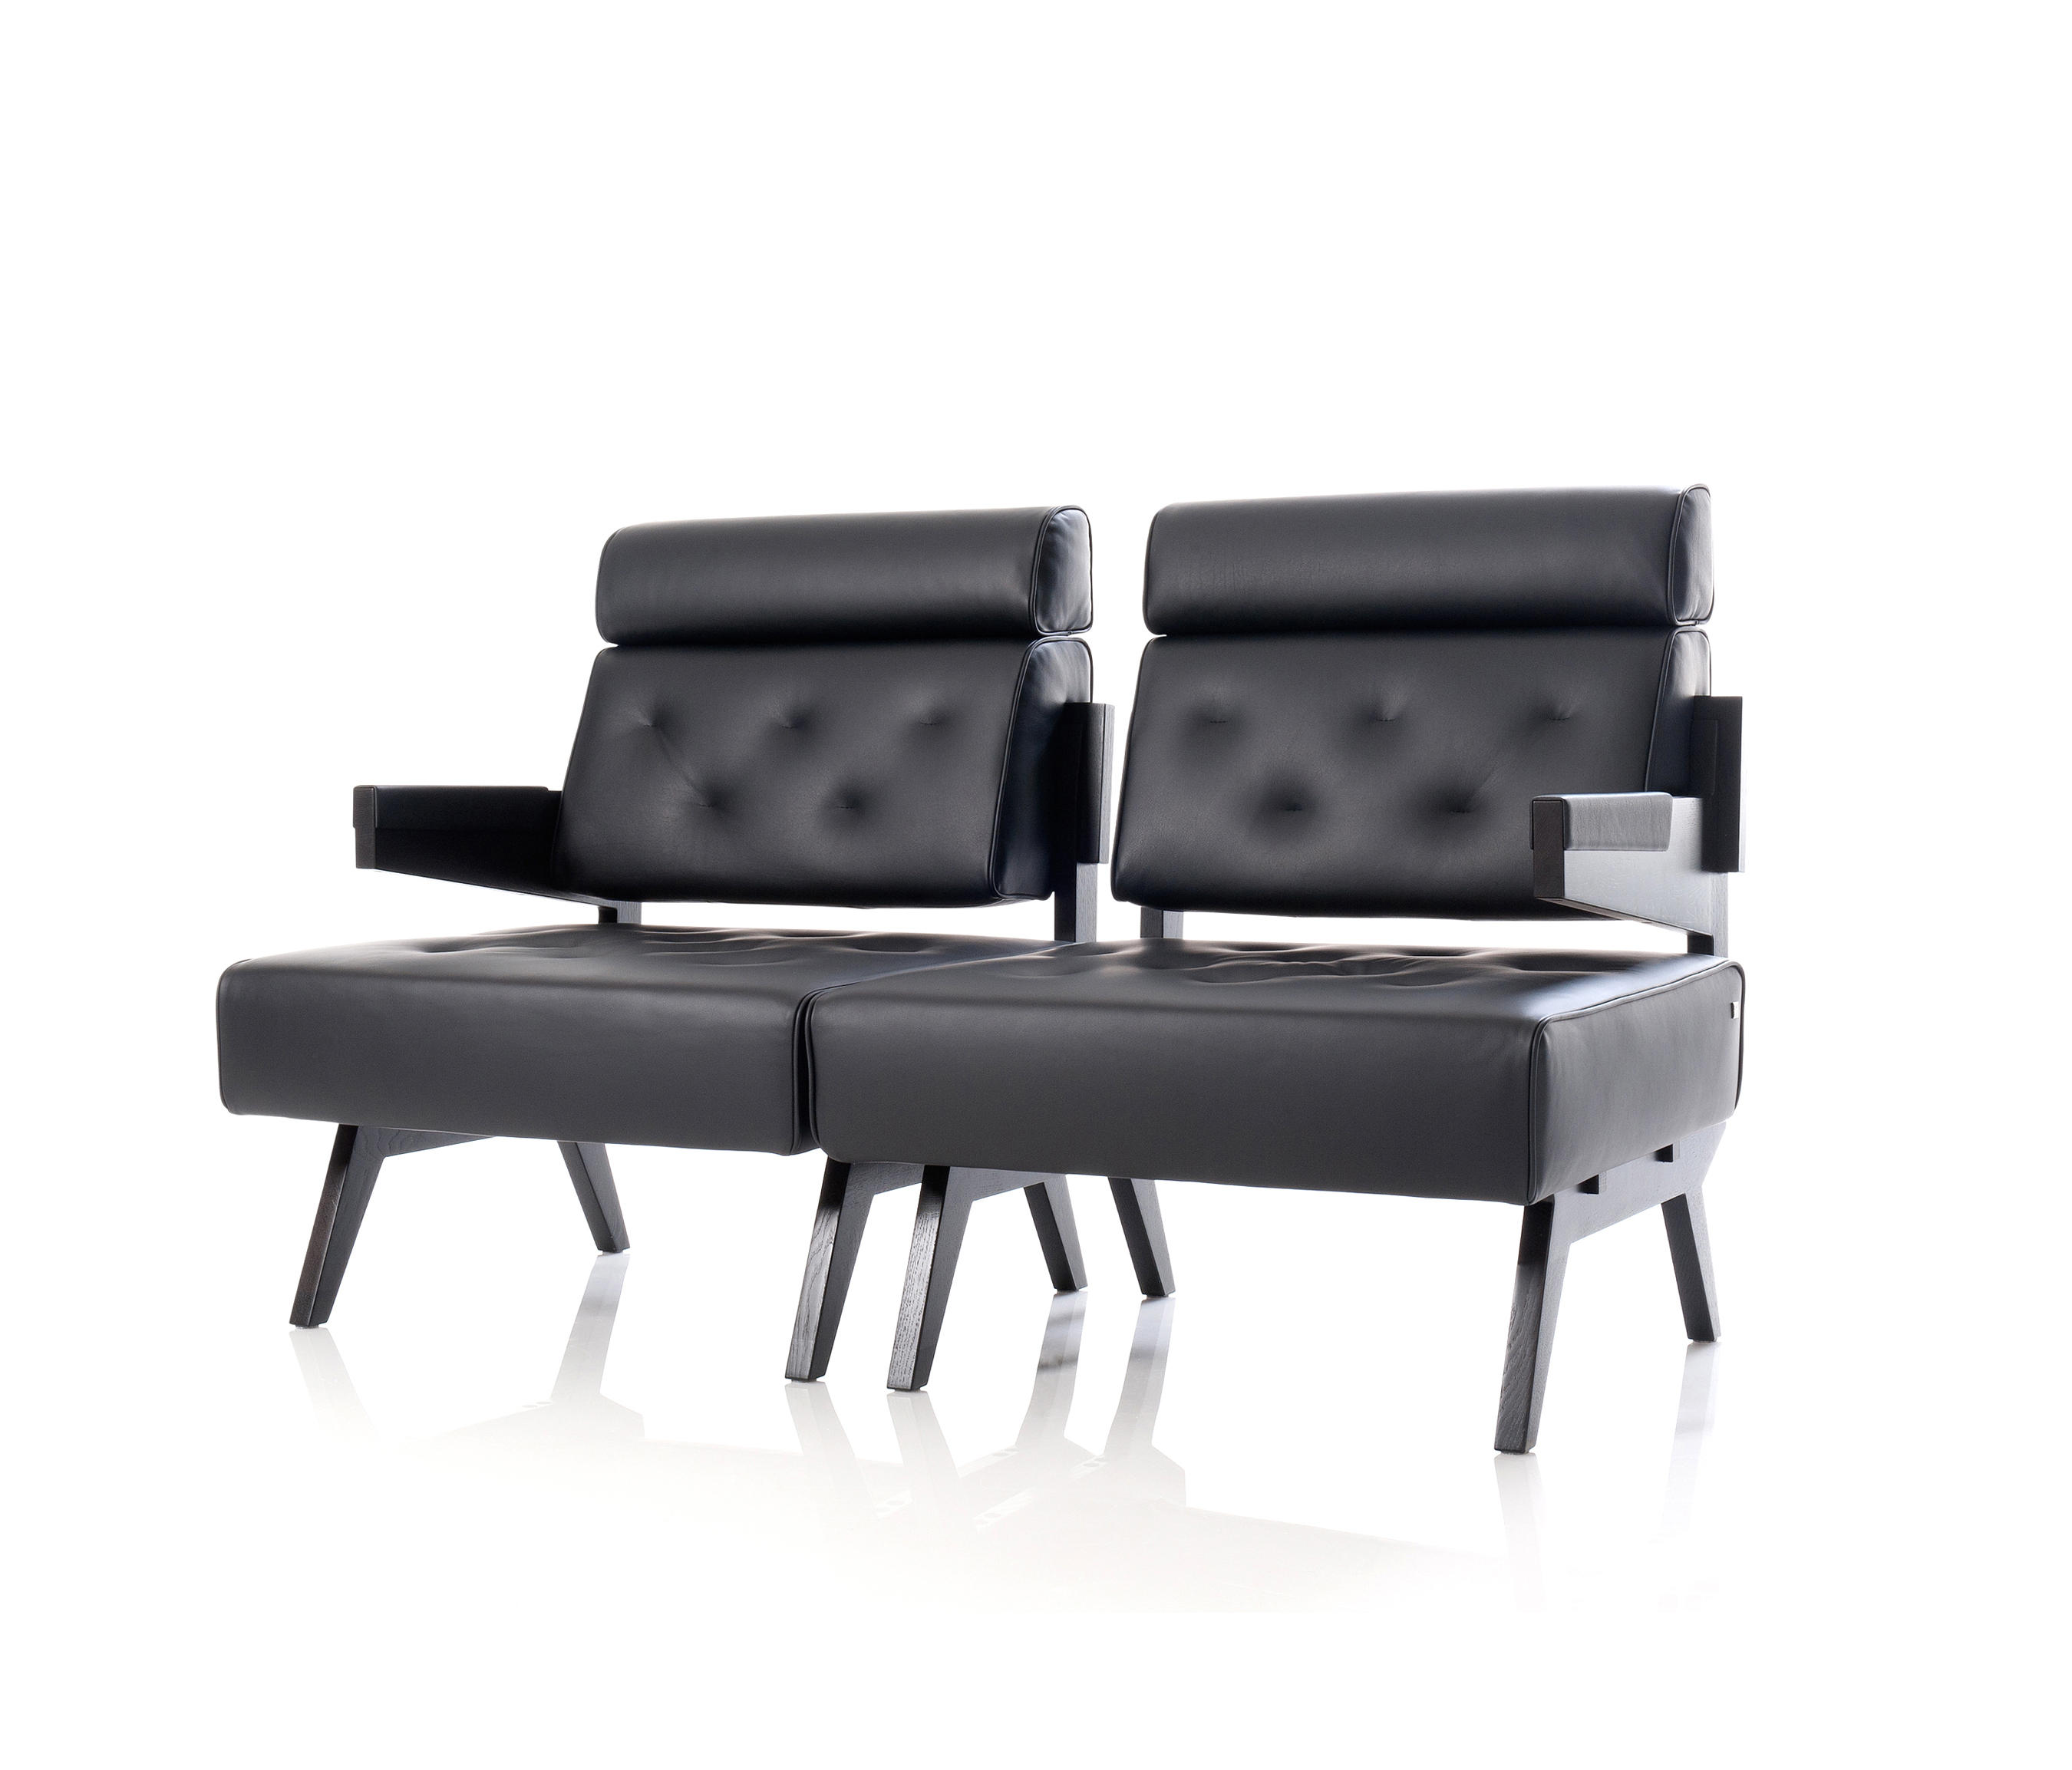 rolf benz 290 lounge sofas from rolf benz architonic. Black Bedroom Furniture Sets. Home Design Ideas